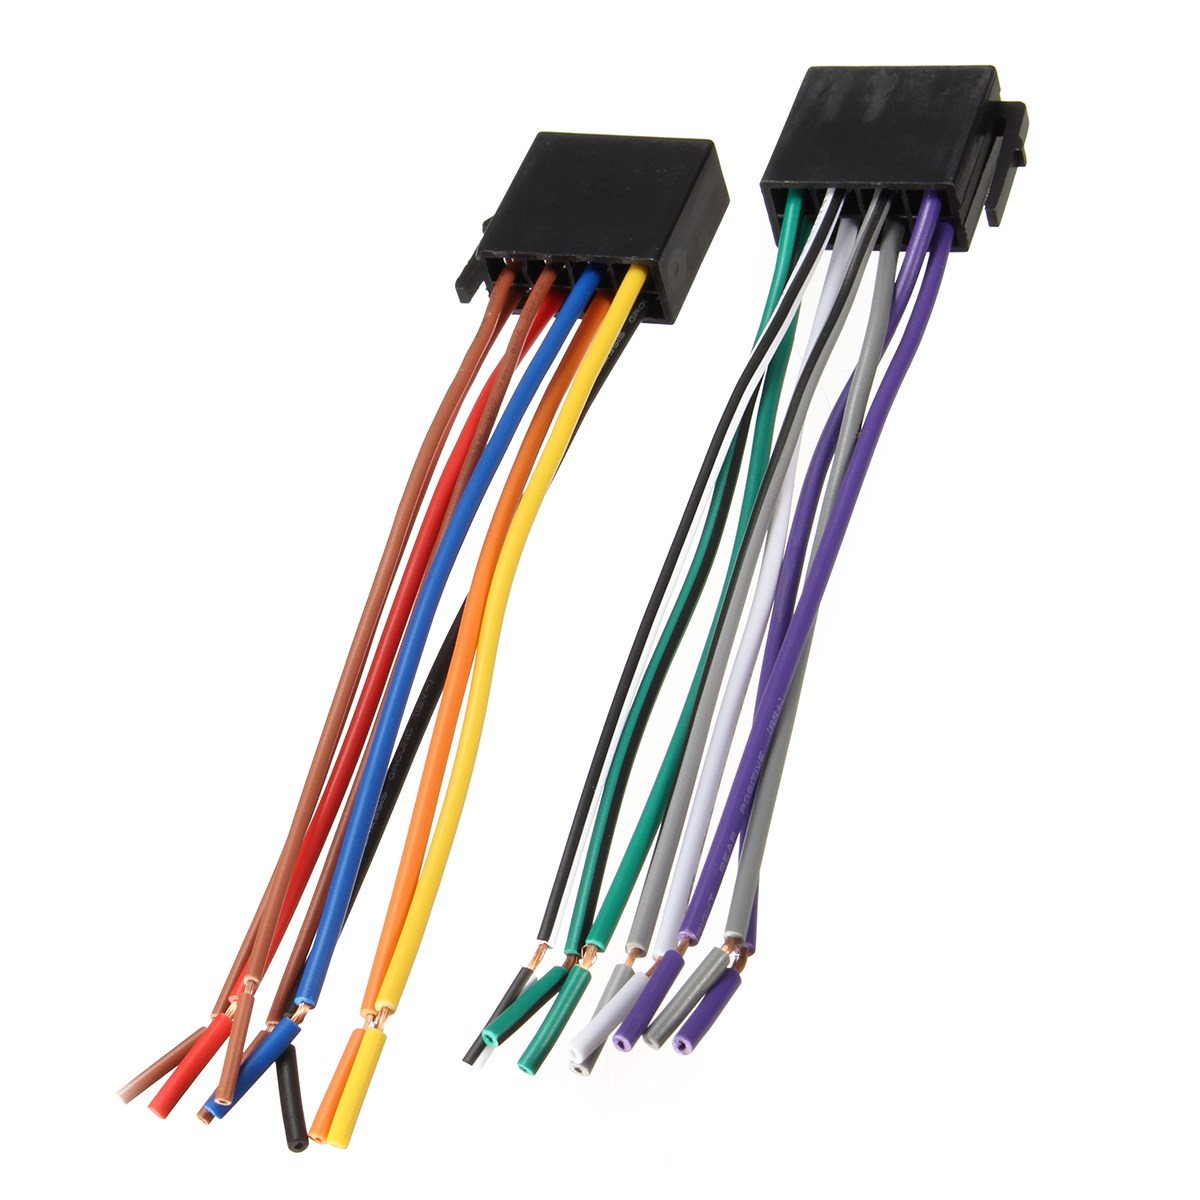 Radio Wiring Harness Product Car Wire Adapter Connector Cable Power Antenna Universal Plug For Auto Stereo System